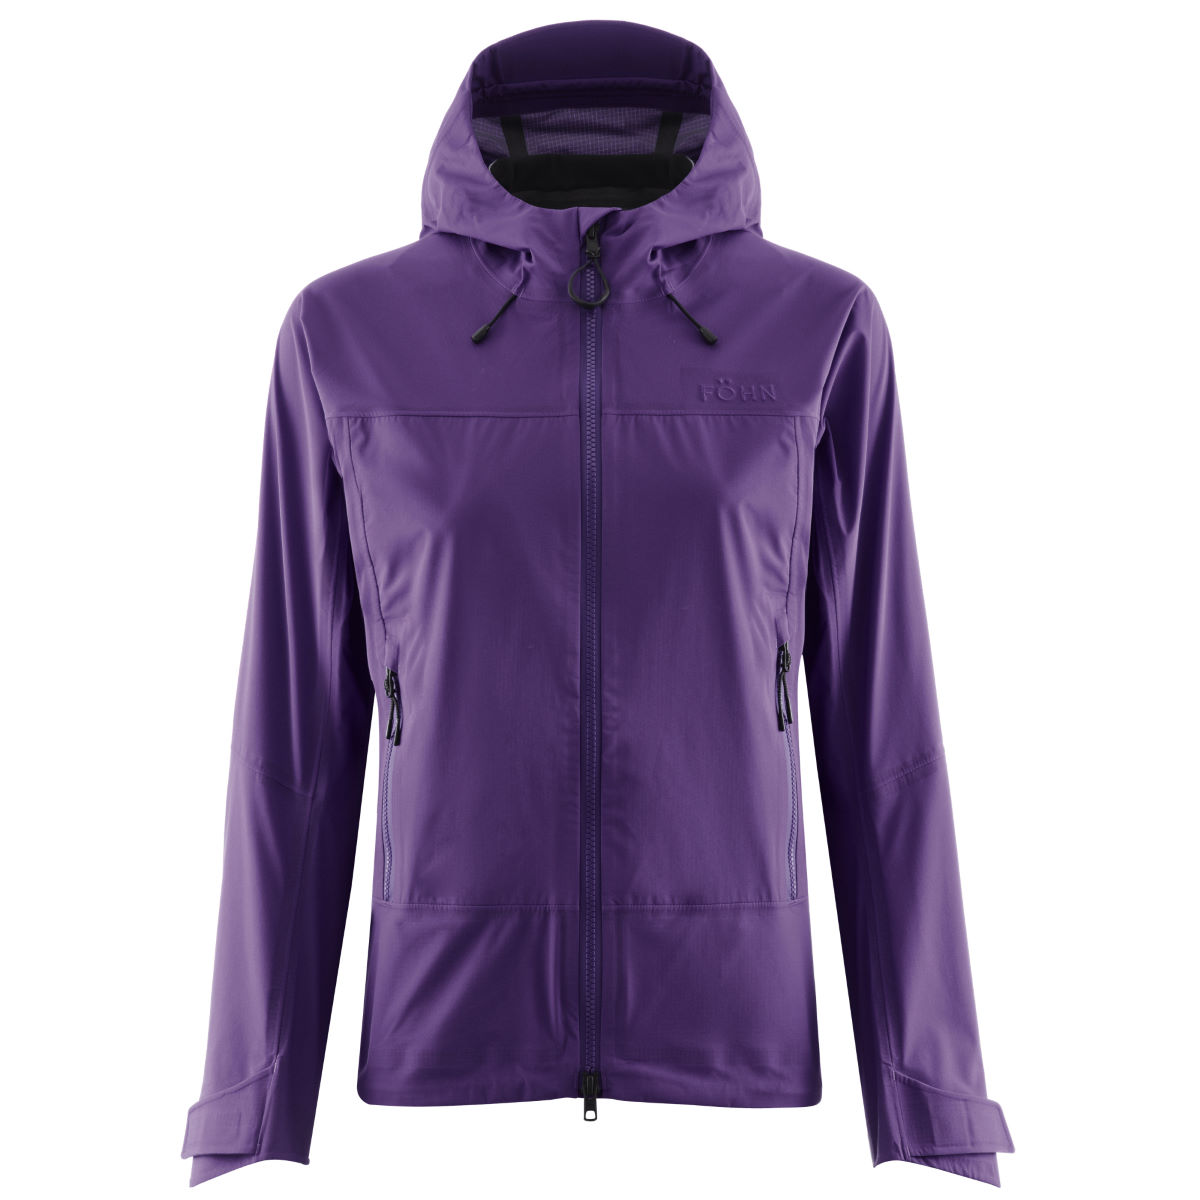 Veste Femme Föhn  Supercell 3L (imperméable) - UK 16 Mauve | Vestes